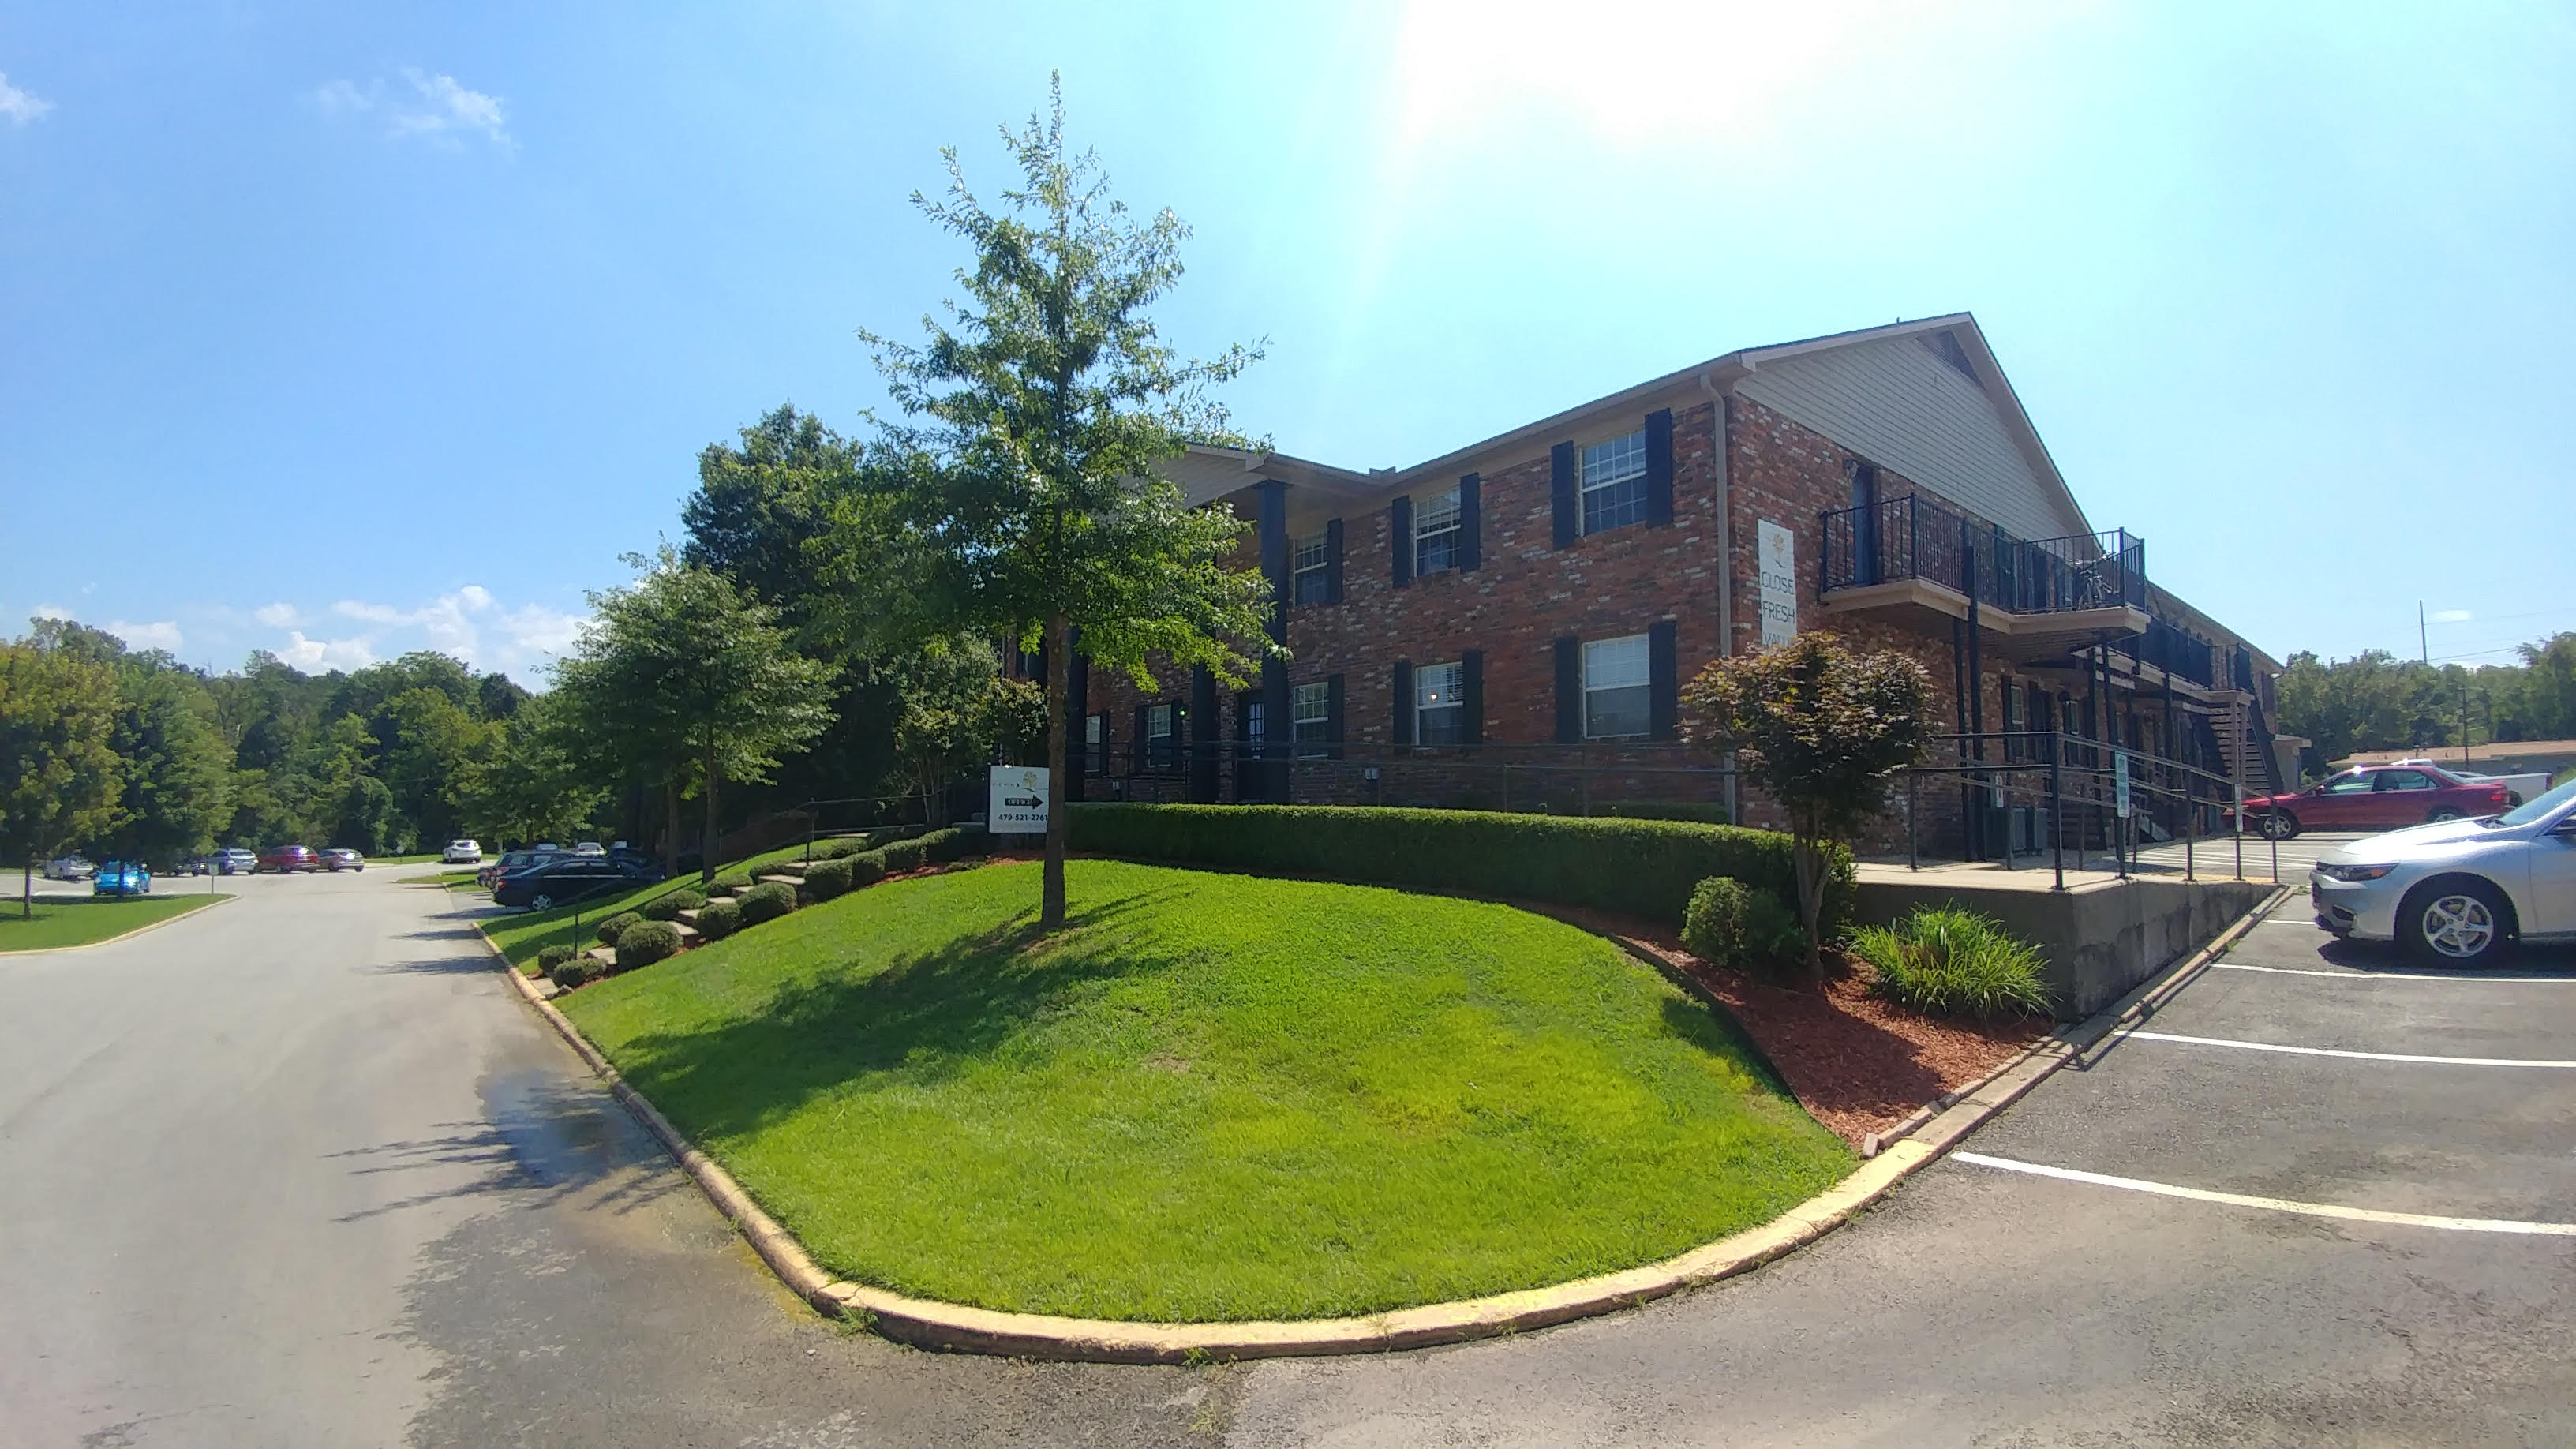 Apartments for Lease  at South Creekside Apartments in Fayetteville, AR